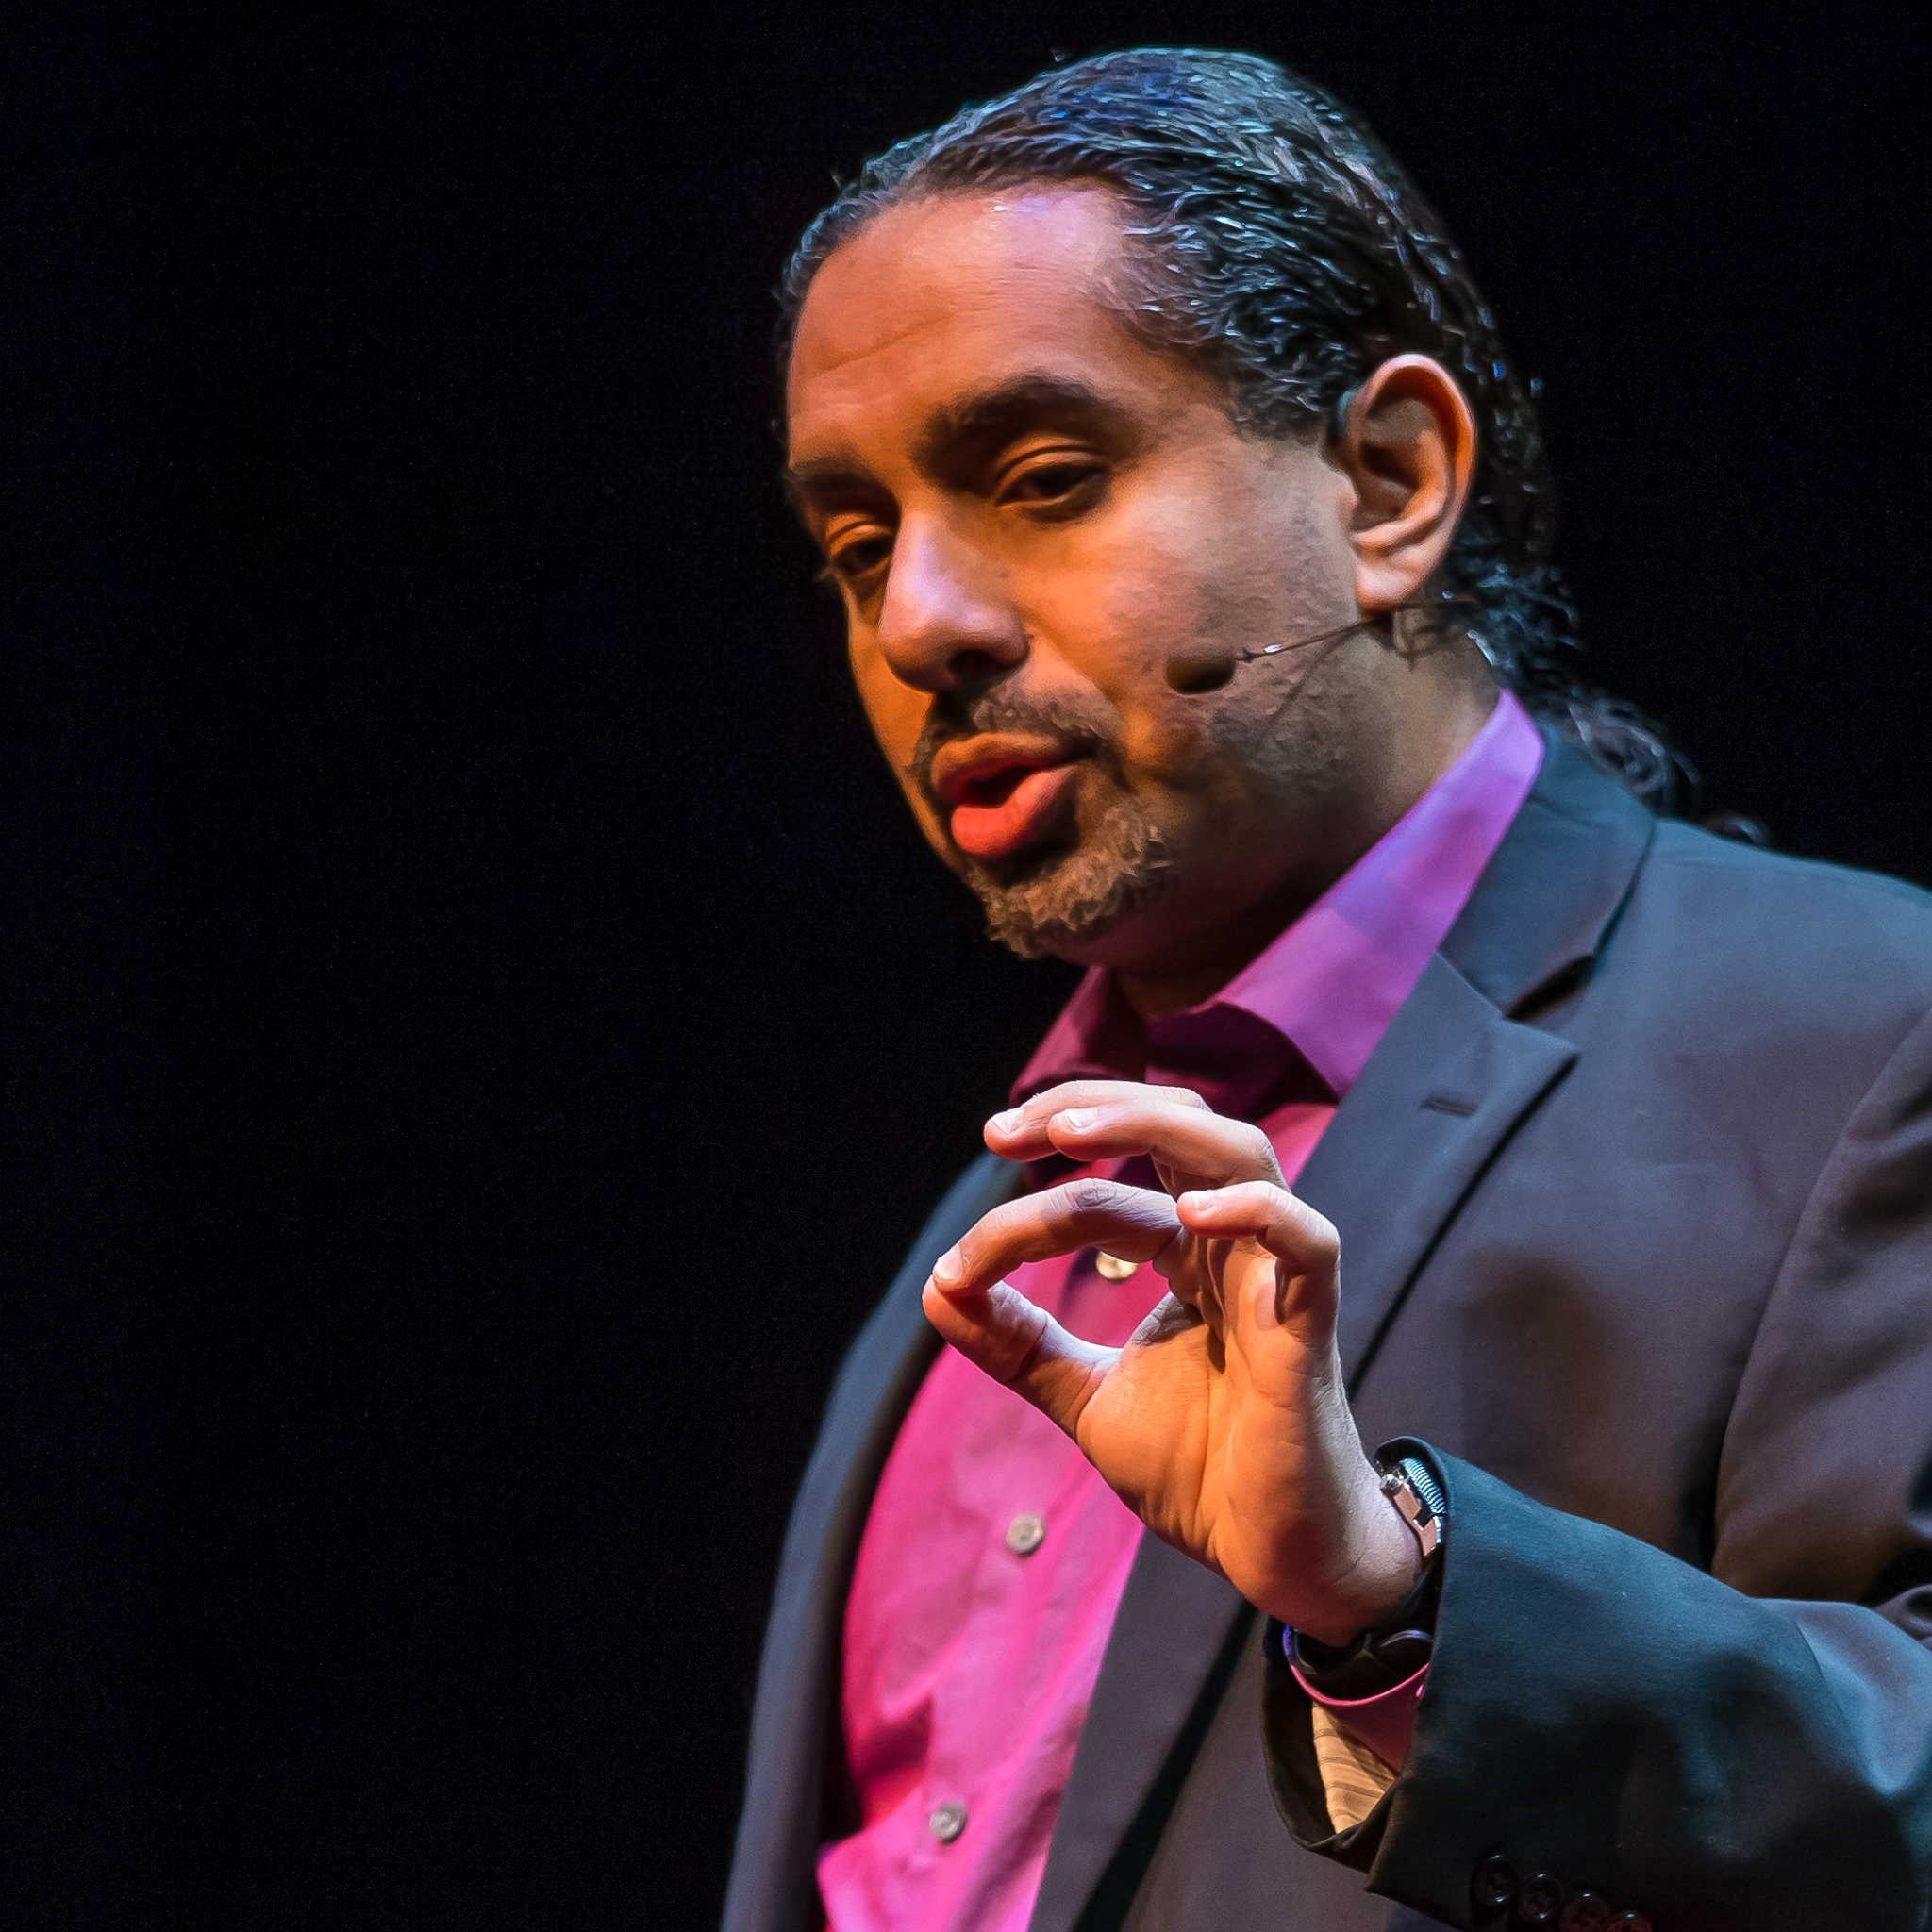 """Ramez Naam is a computer scientist, investor, and award-winning author of five books, including   The Infinite Resource: The Power of Ideas on a Finite Planet  , which charts a path to innovating our way beyond the challenges of climate change, ocean destruction, food, water, energy, population, and more.    Ramez is the Co-Chair for Energy and Environment at  Singularity University  at NASA Ames. He speaks around the world on innovation, exponential technology, solving environmental challenges, and  disruptive energy technologies.    Ramez's seminal 2011 Scientific American article, """" Smaller, Cheaper, Faster """" observed that the price of solar power was dropping exponentially and would eventually be lower than that of any other energy source. He's since detailed the exponential trends in  wind power ,  energy storage , and  electric vehicles . His observations have been quoted by Nobel laureate Paul Krugman, by Ray Kurzweil and Peter Diamandis, and by energy and financial analysts around the world. In addition to his energy analysis, Ramez is an angel investor in numerous clean energy startups, a board member of E8 Angels, and the founder and leader of the  first AngelList syndicate devoted to clean technology .    His work has appeared in or been quoted in  The New York Times ,  The Wall Street Journal ,  The Economist ,  The Atlantic ,  Slate ,  Business Week ,  Discover ,  Wired , and  Scientific American . He's appeared on MSNBC, on Yahoo Finance, and has spoken to public audiences, corporate leaders, and government leaders on six continents, from Istanbul to Shanghai; from Buenos Aires to Washington DC.    Follow Ramez on twitter:  @ramez"""